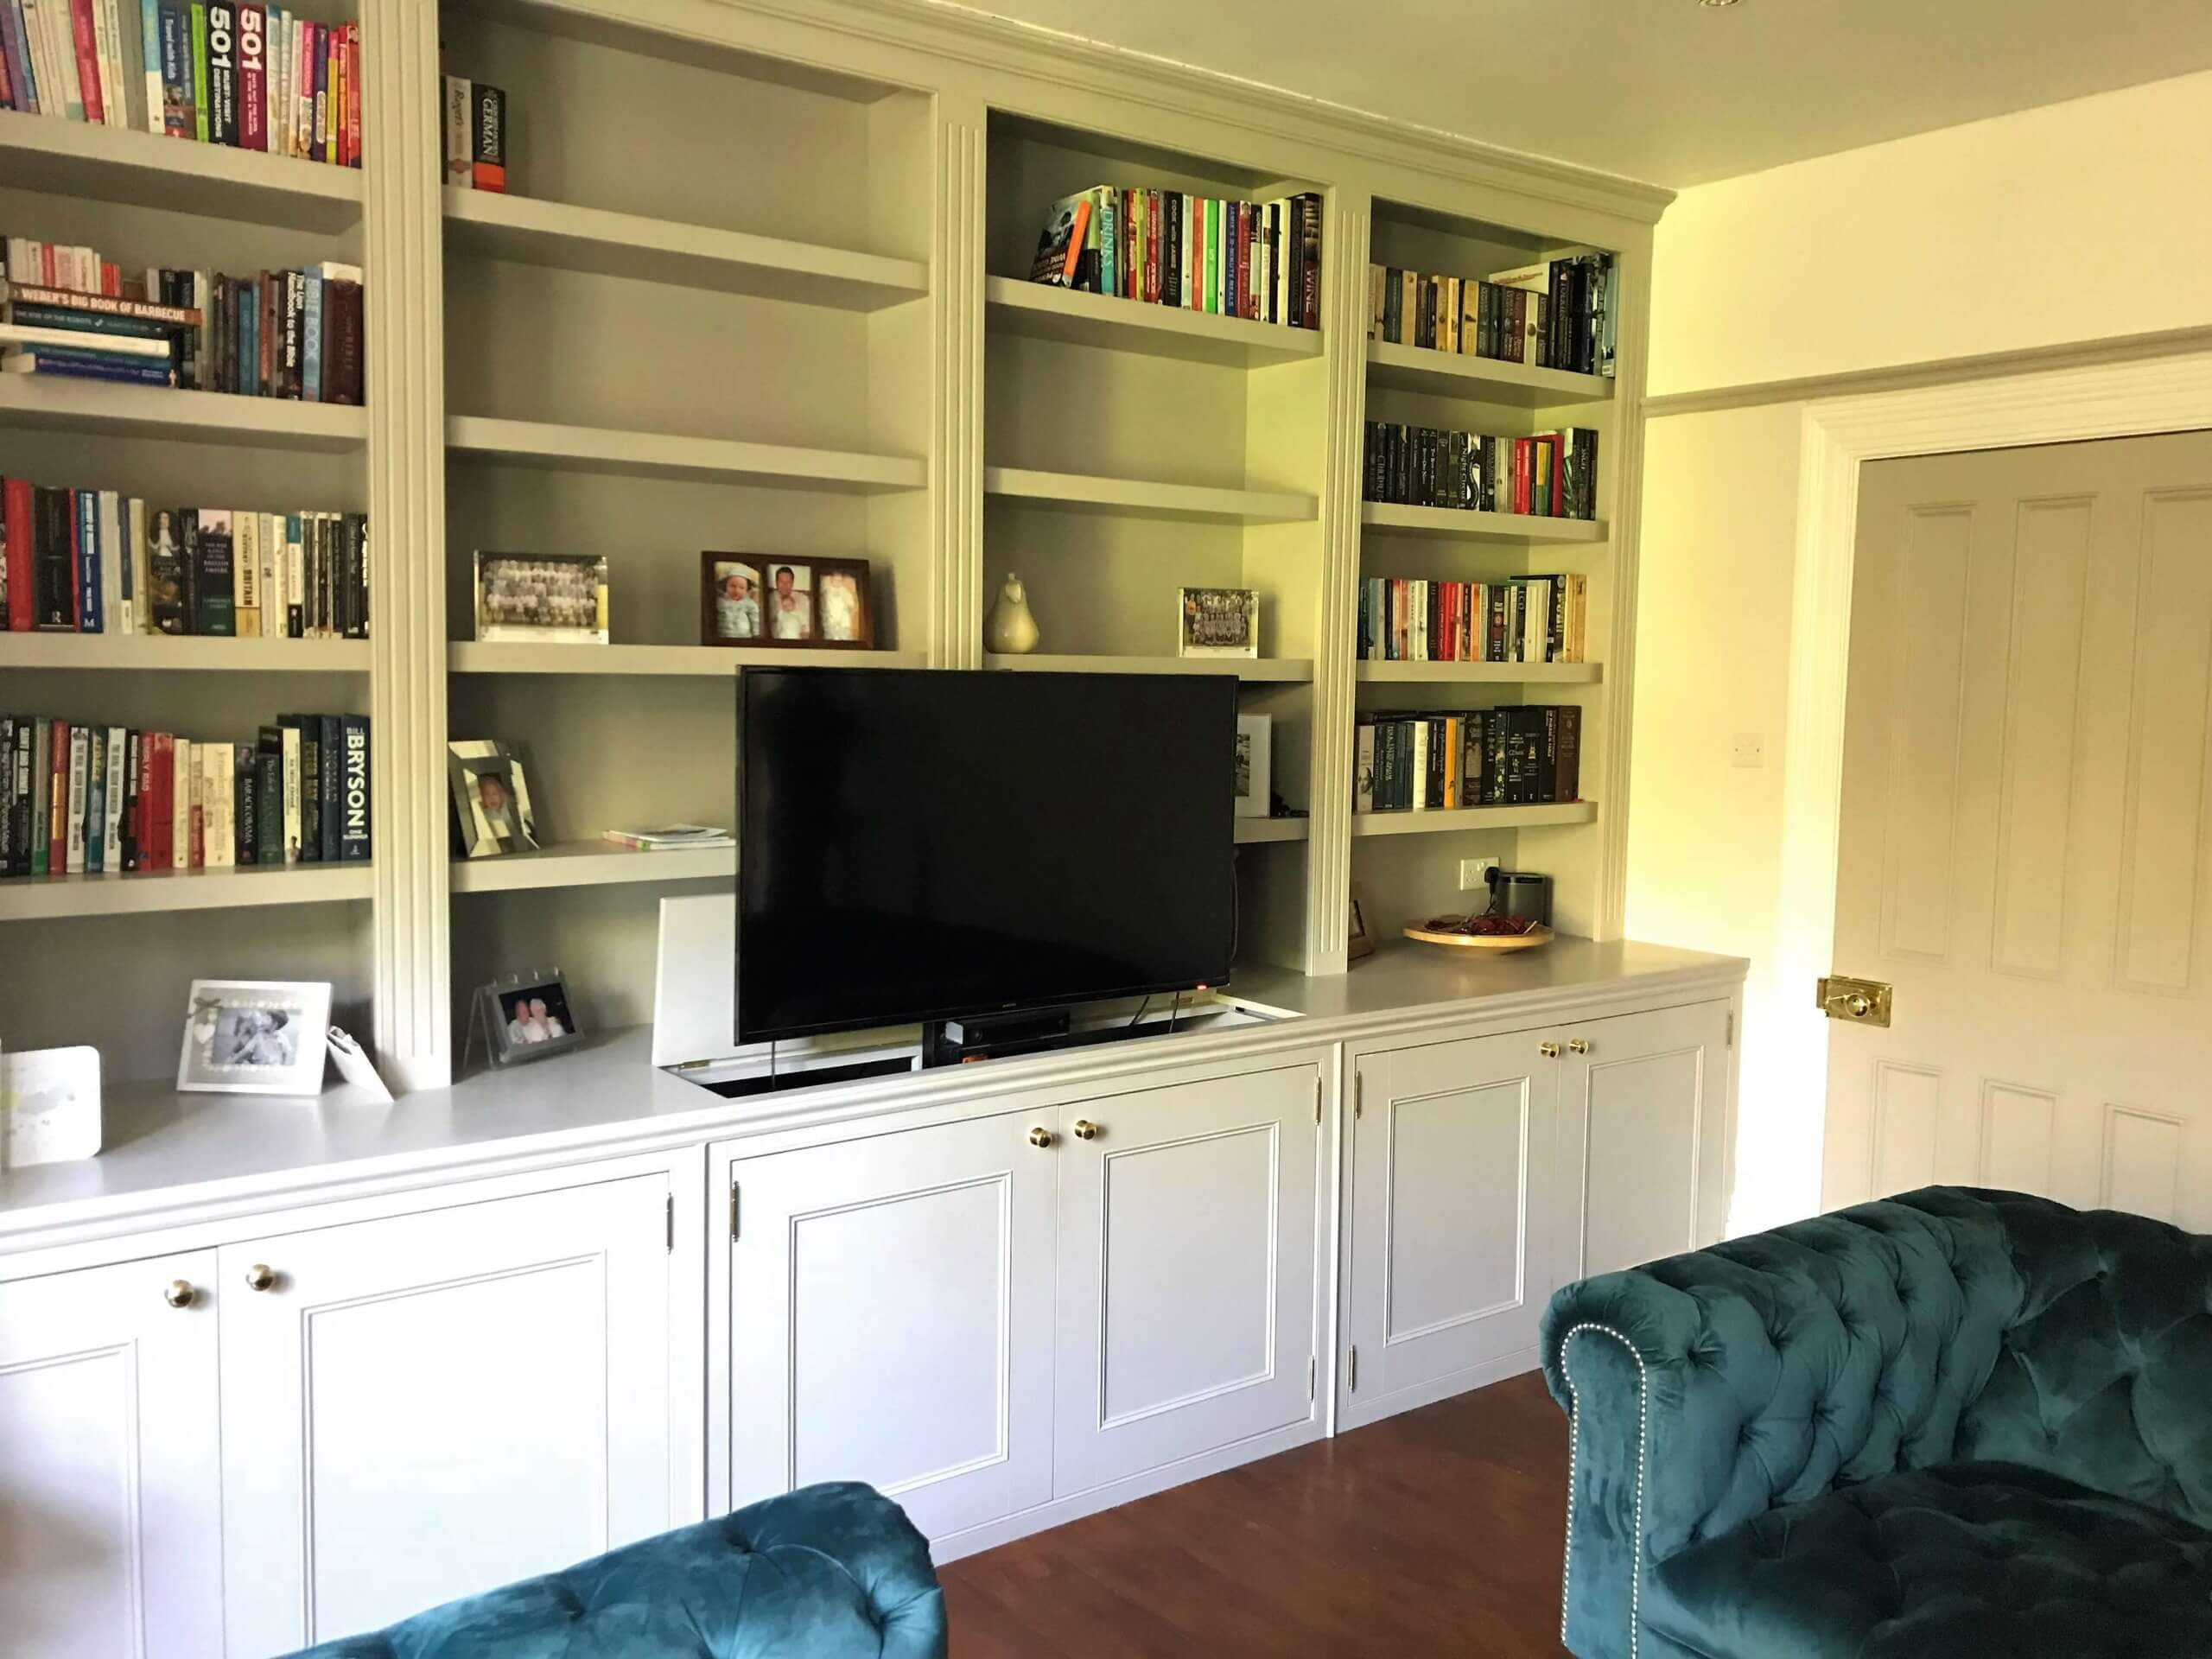 Bespoke Fitted furniture, Storage, Shelves, Fitted Shelf's, Library, Bookcase, Bespoke Bookcase, Leamington Spa, Warwick, Elegant Bespoke living, Joinery, Carpentry, Pop up TV, TV room, Lounge